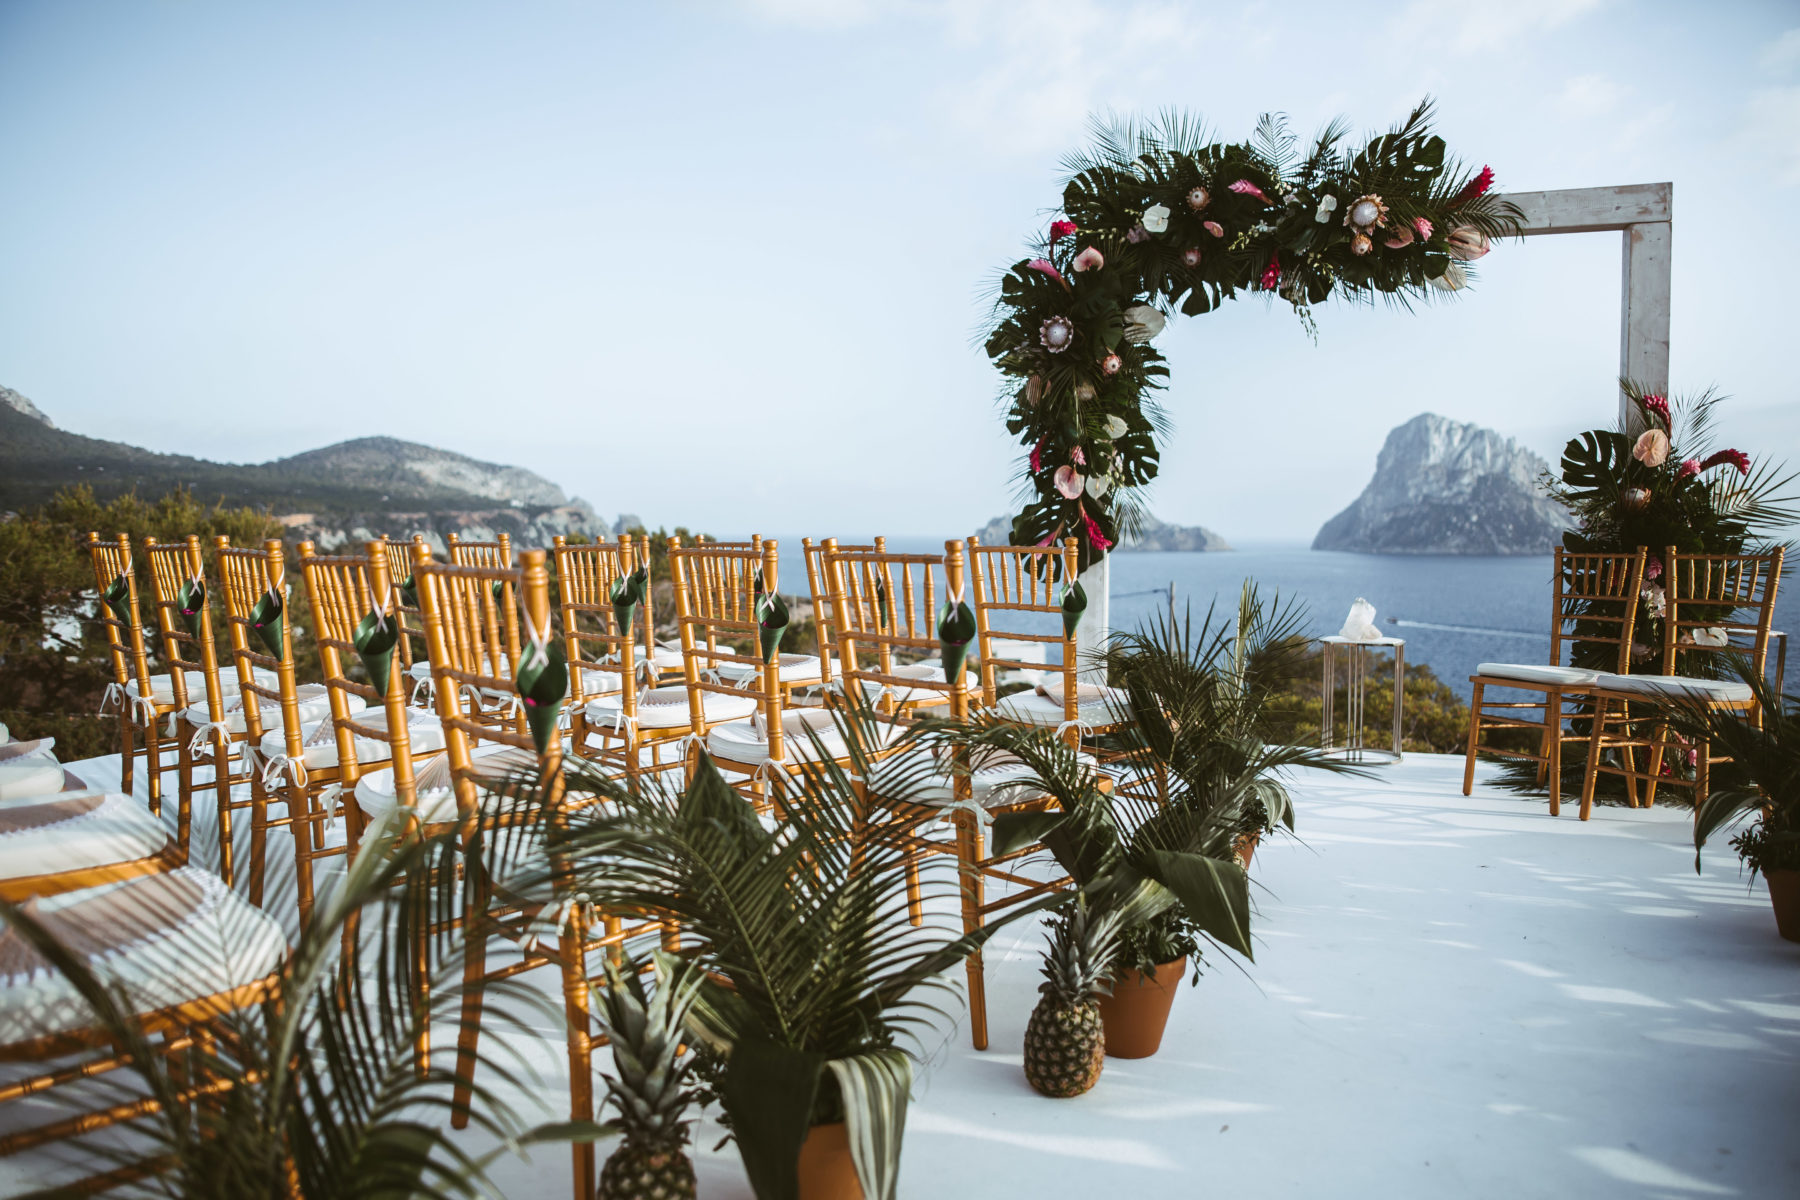 mallorca-hochzeit-ibiza-la-escollera-ibiza-destination-wedding-mallorca-weddings.jpg